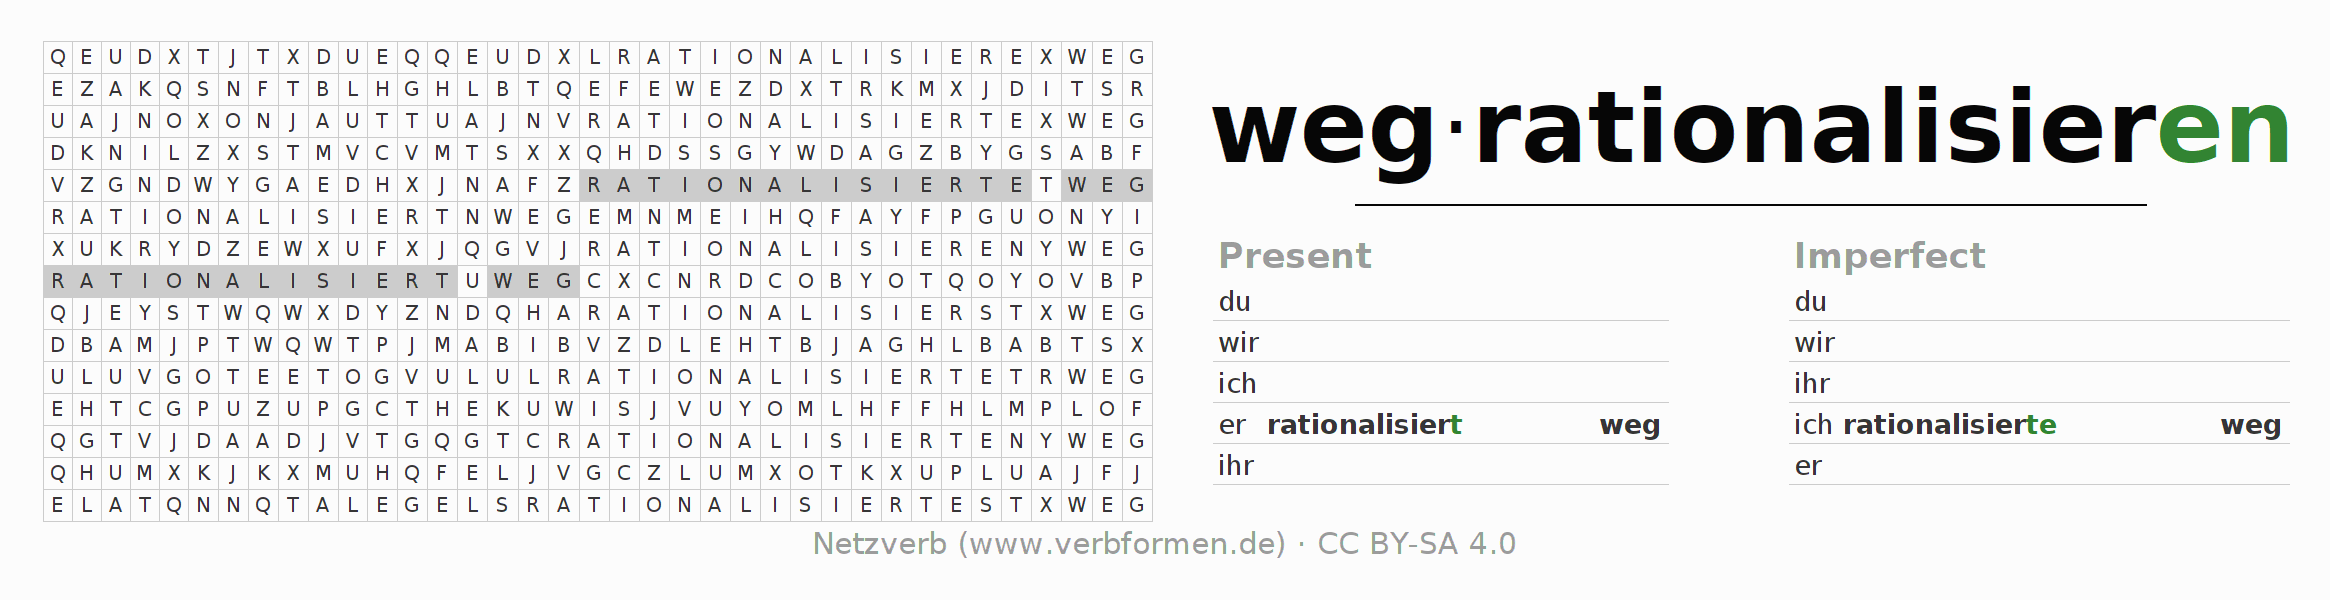 Word search puzzle for the conjugation of the verb wegrationalisieren